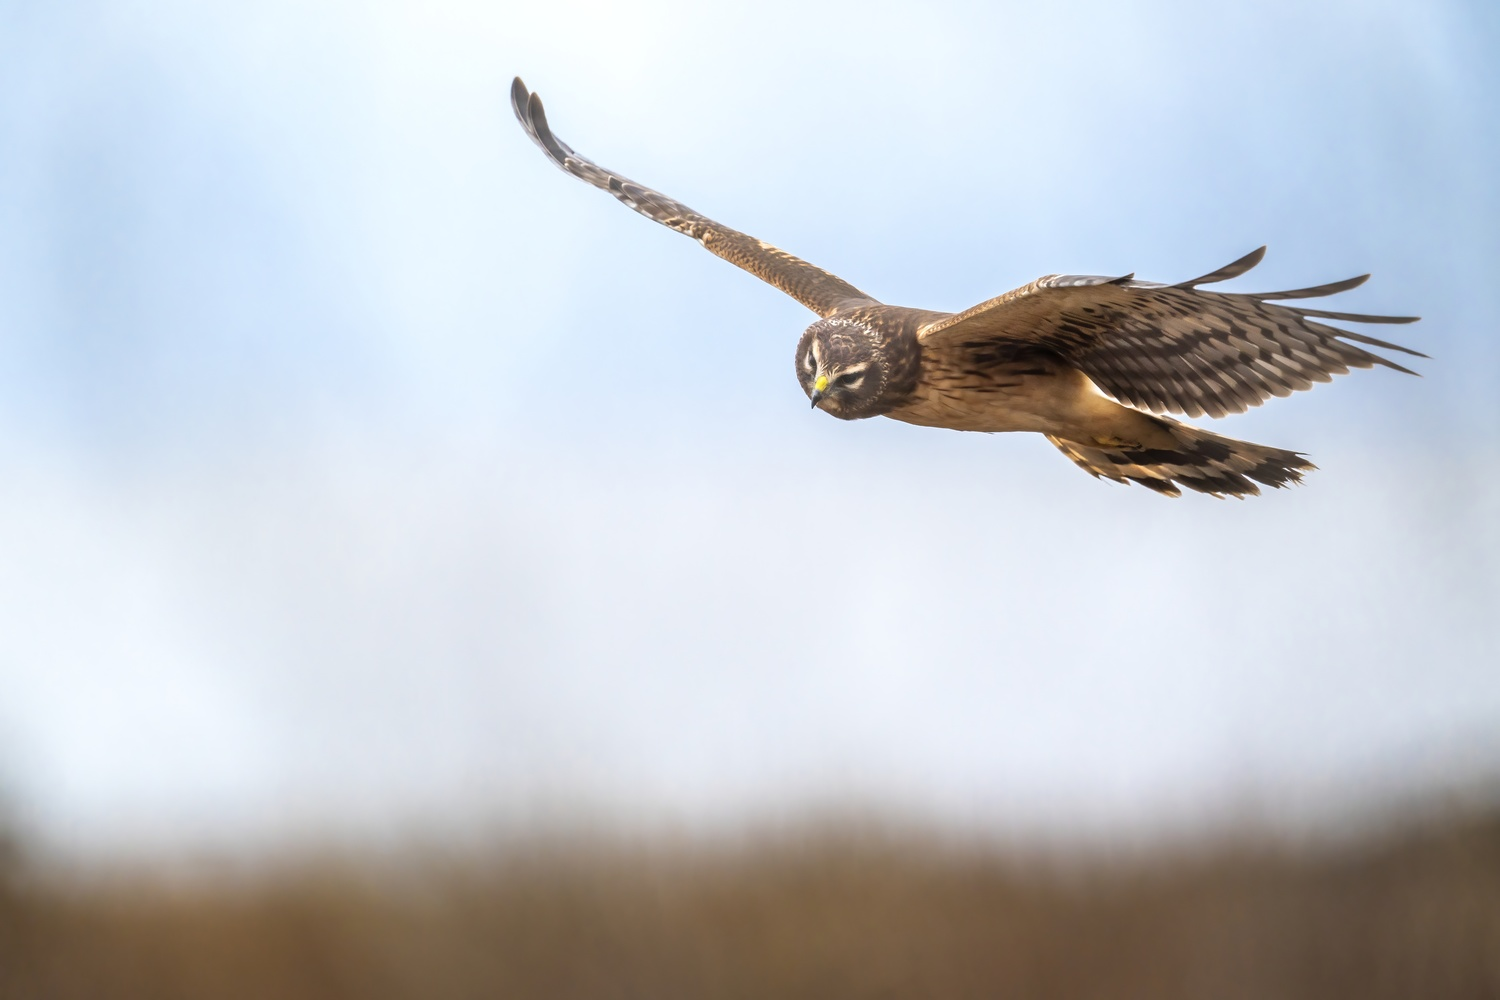 Northern Harrier up close by Gordon Hatusupy